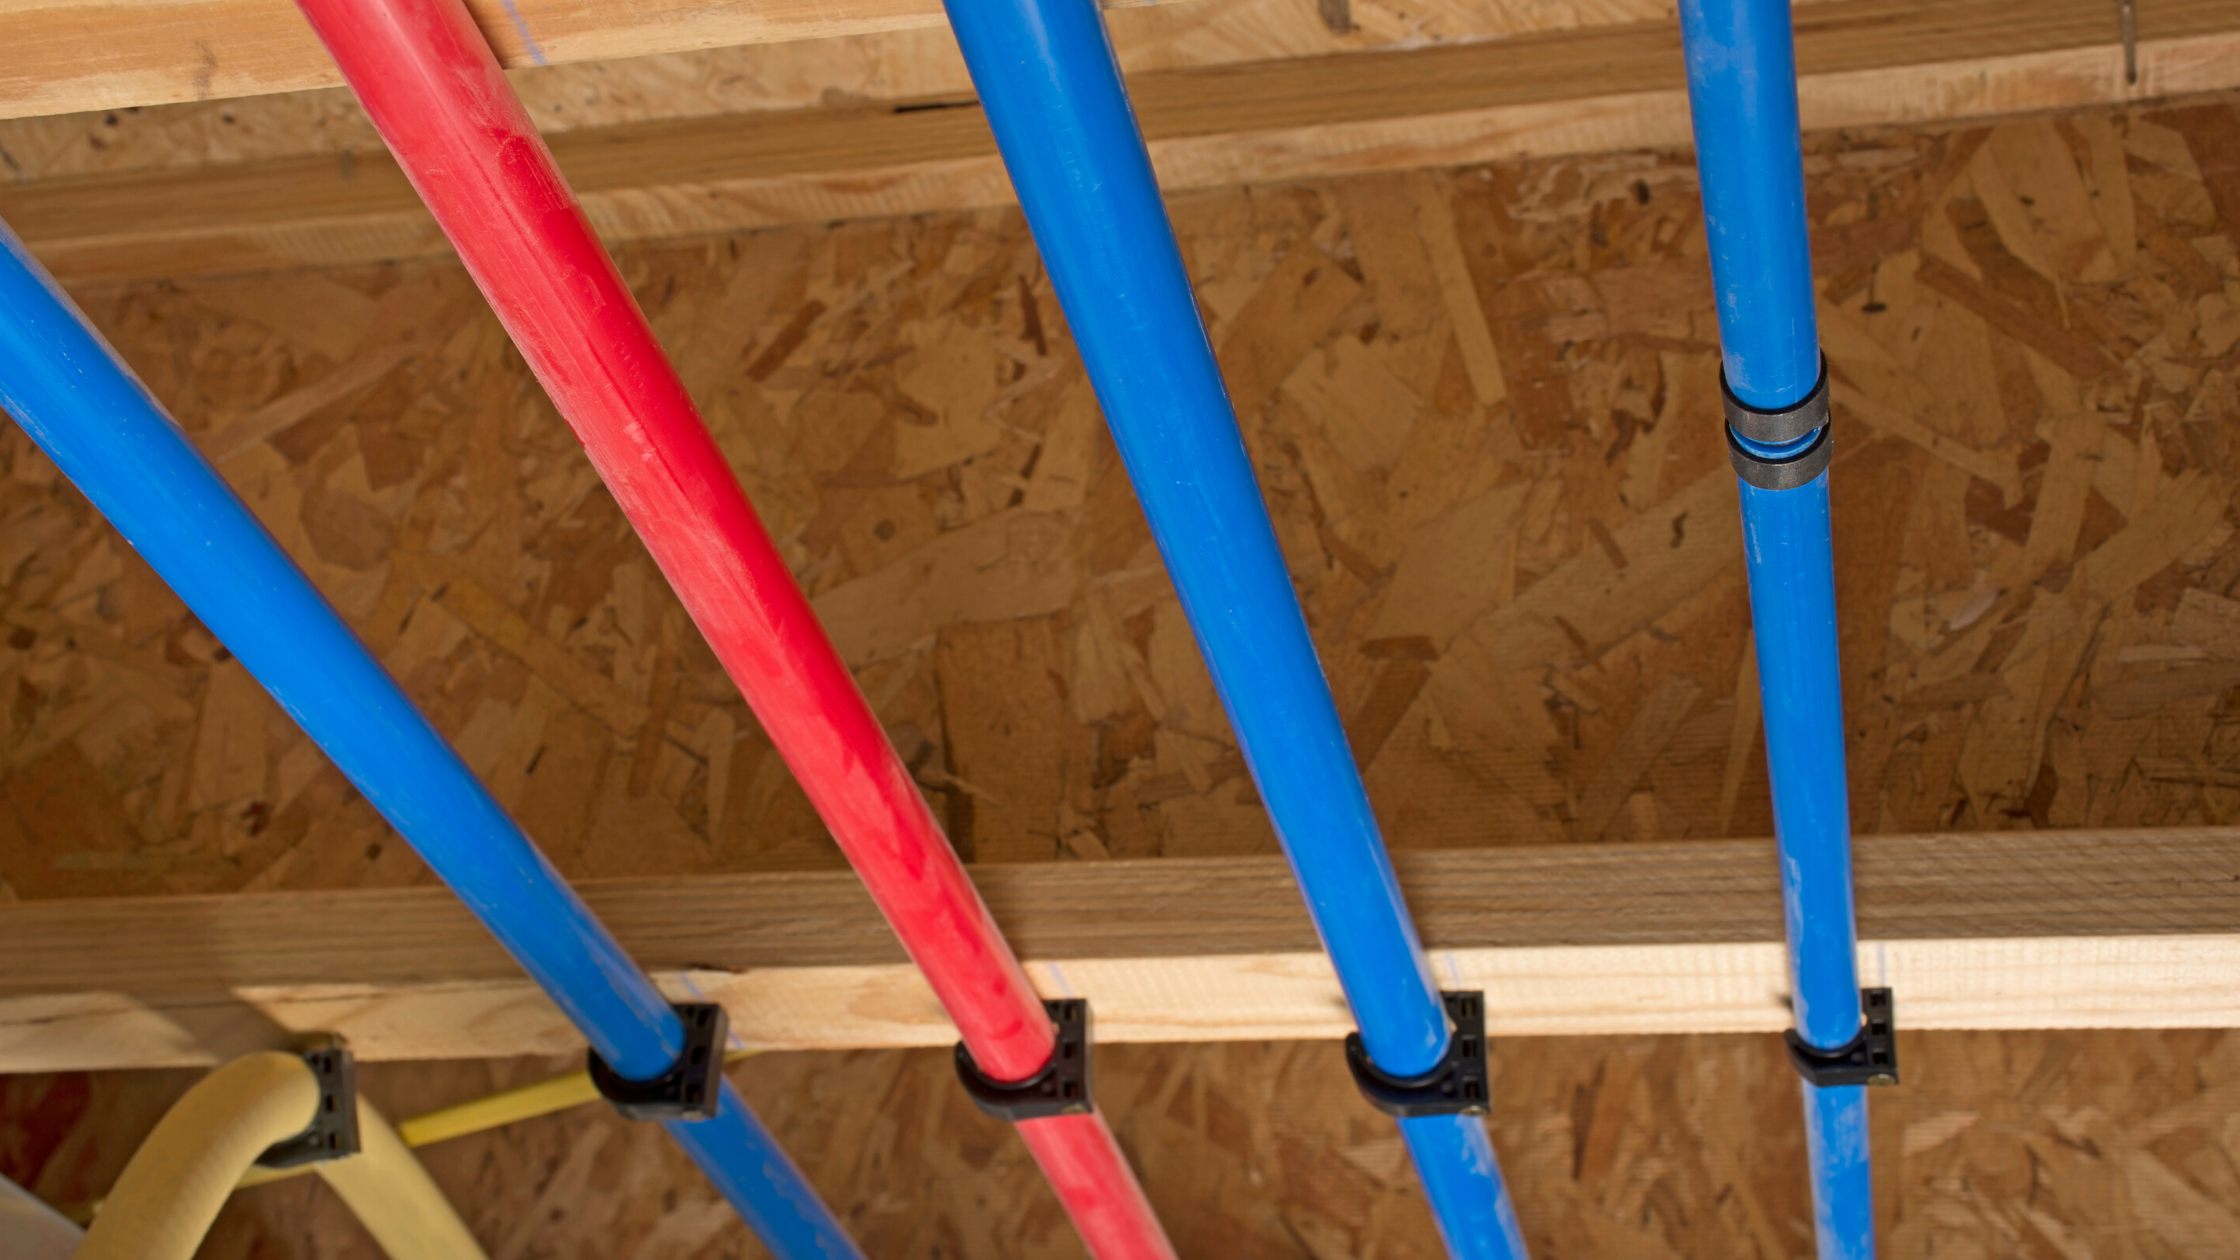 PEX or Copper? Which is More Sustainable?